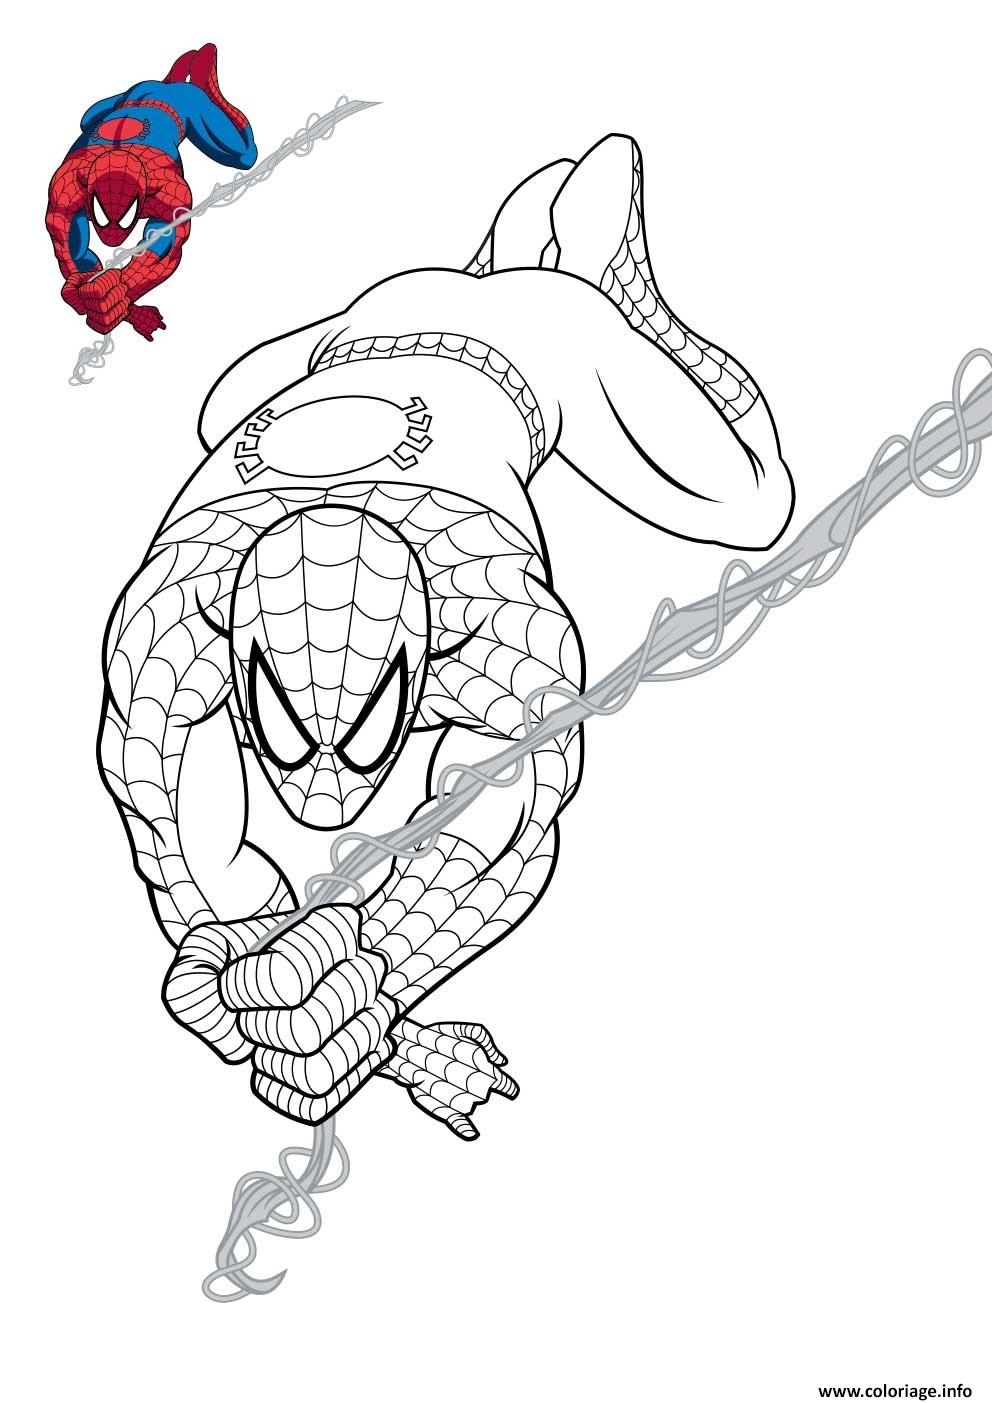 Coloriage Spiderman En Plein Action Dessin à Imprimer